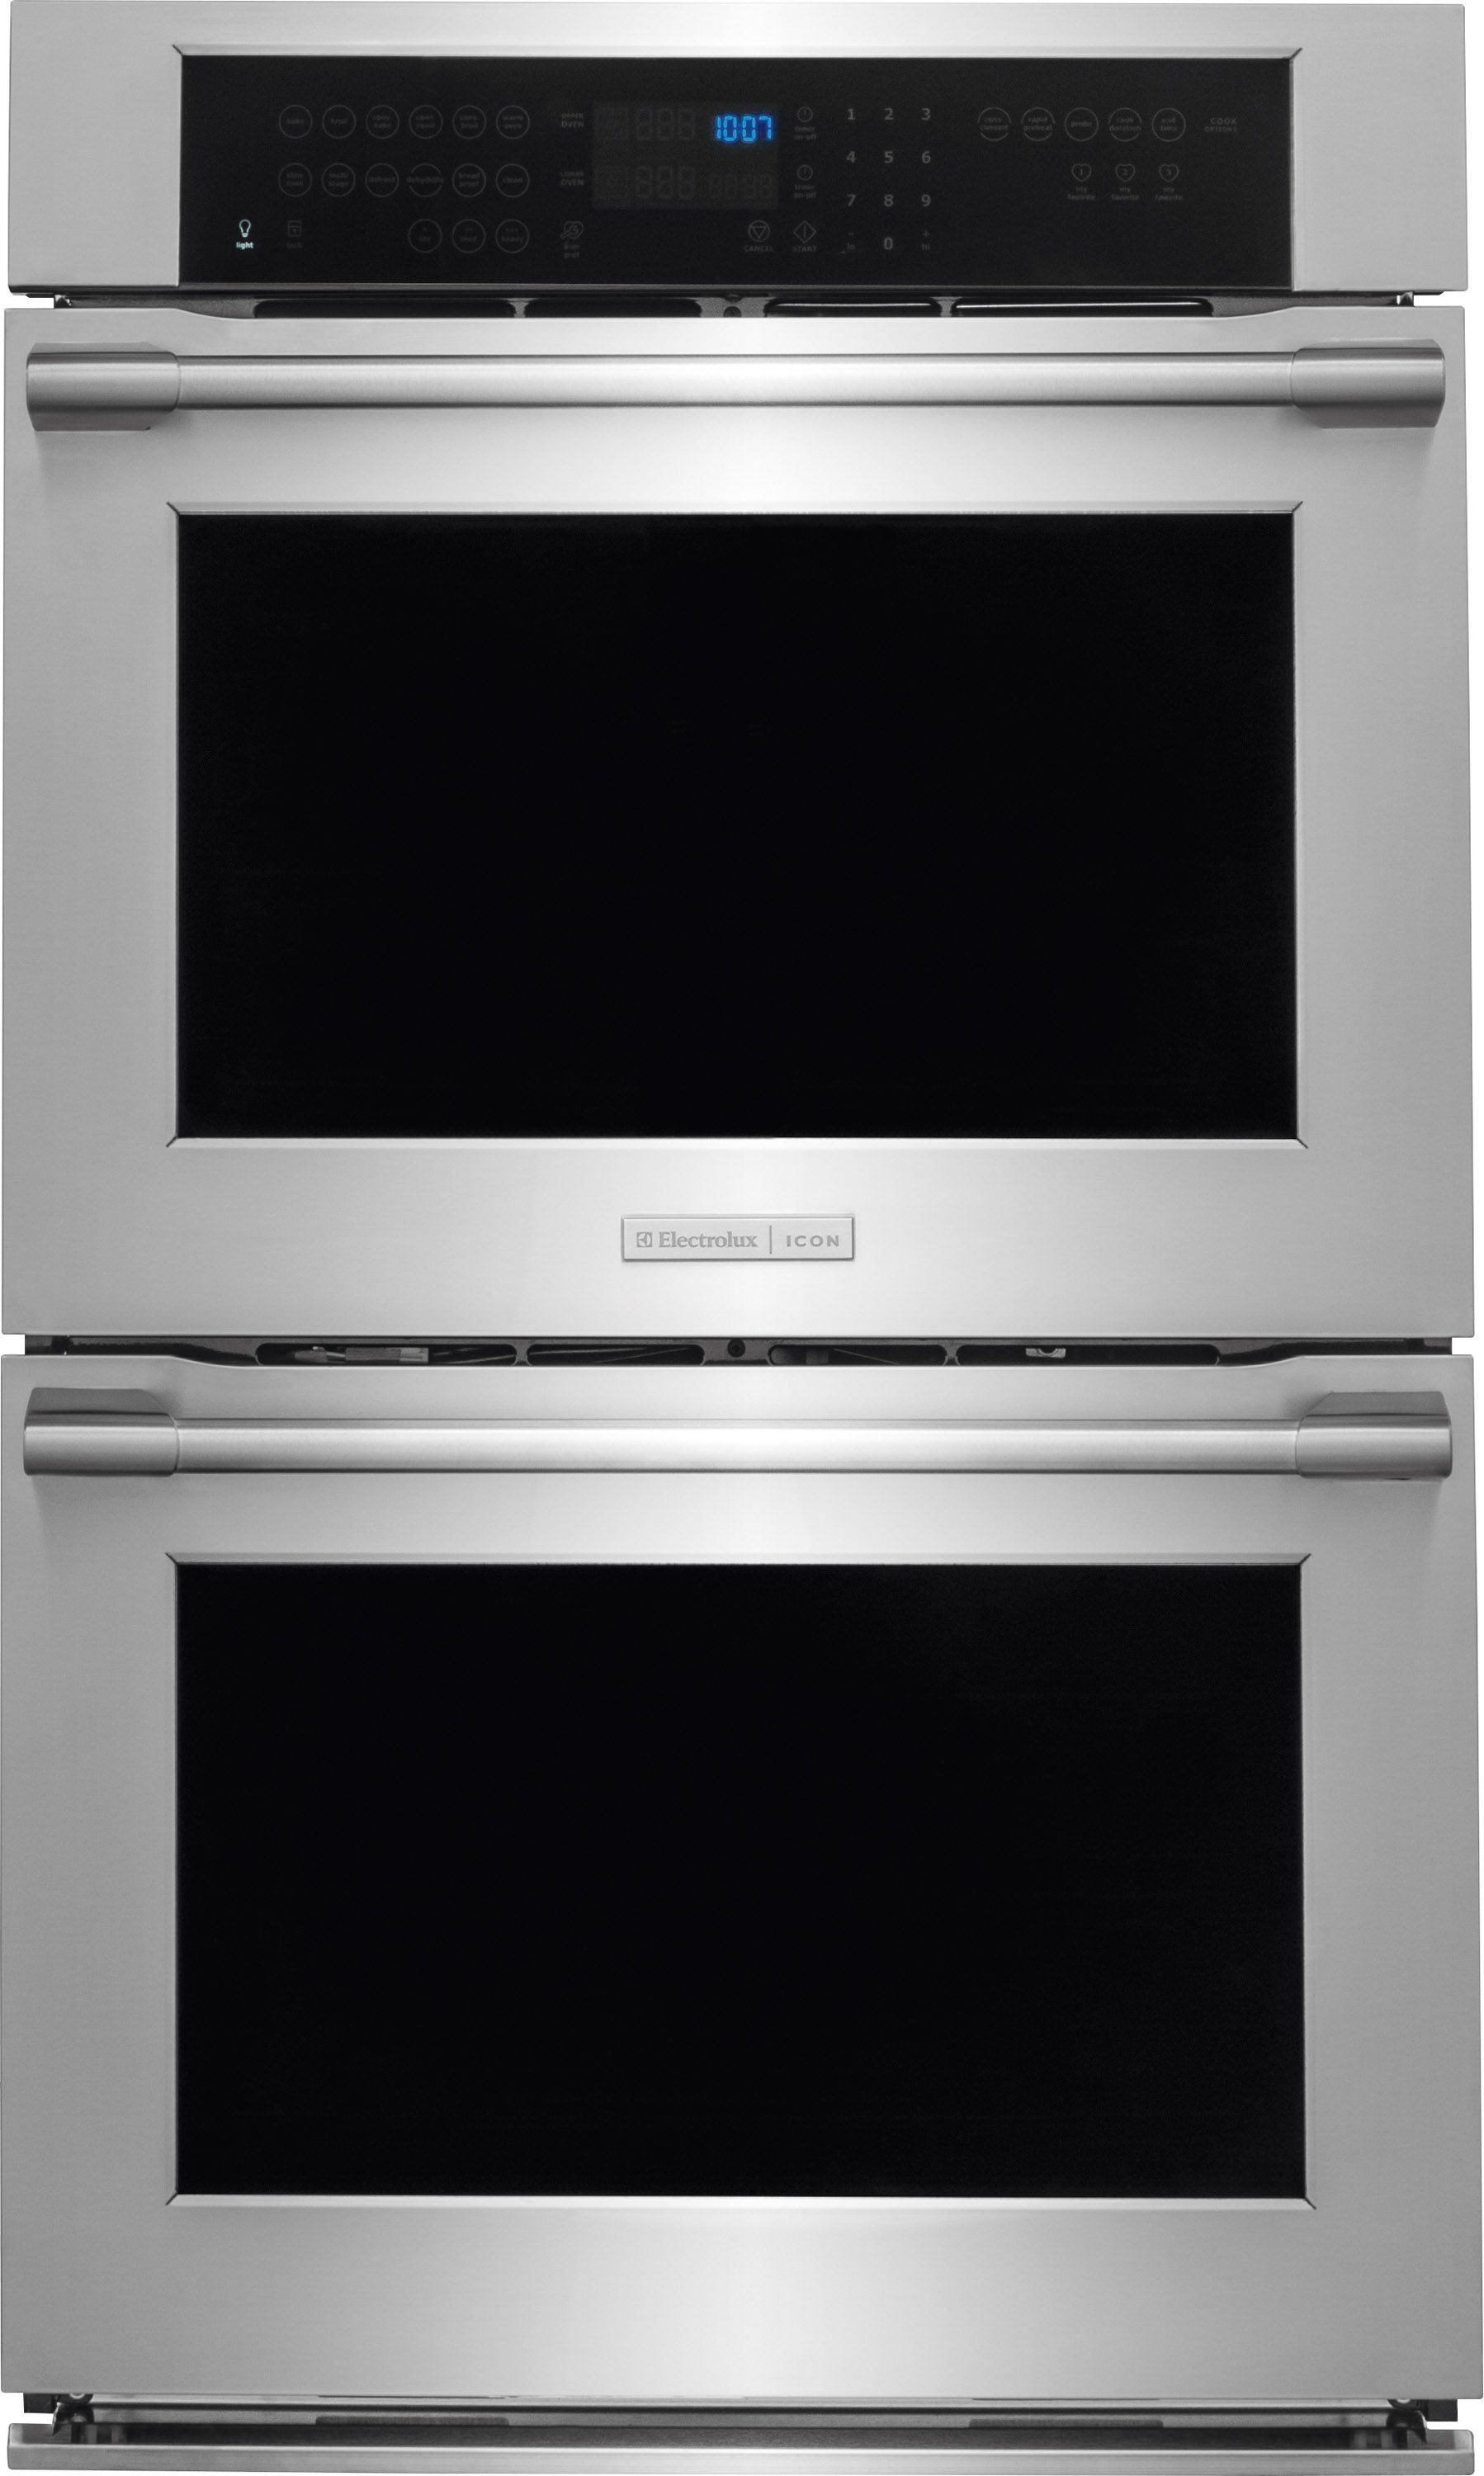 Electrolux E30ew85pps Icon 30 Electric Double Wall Oven